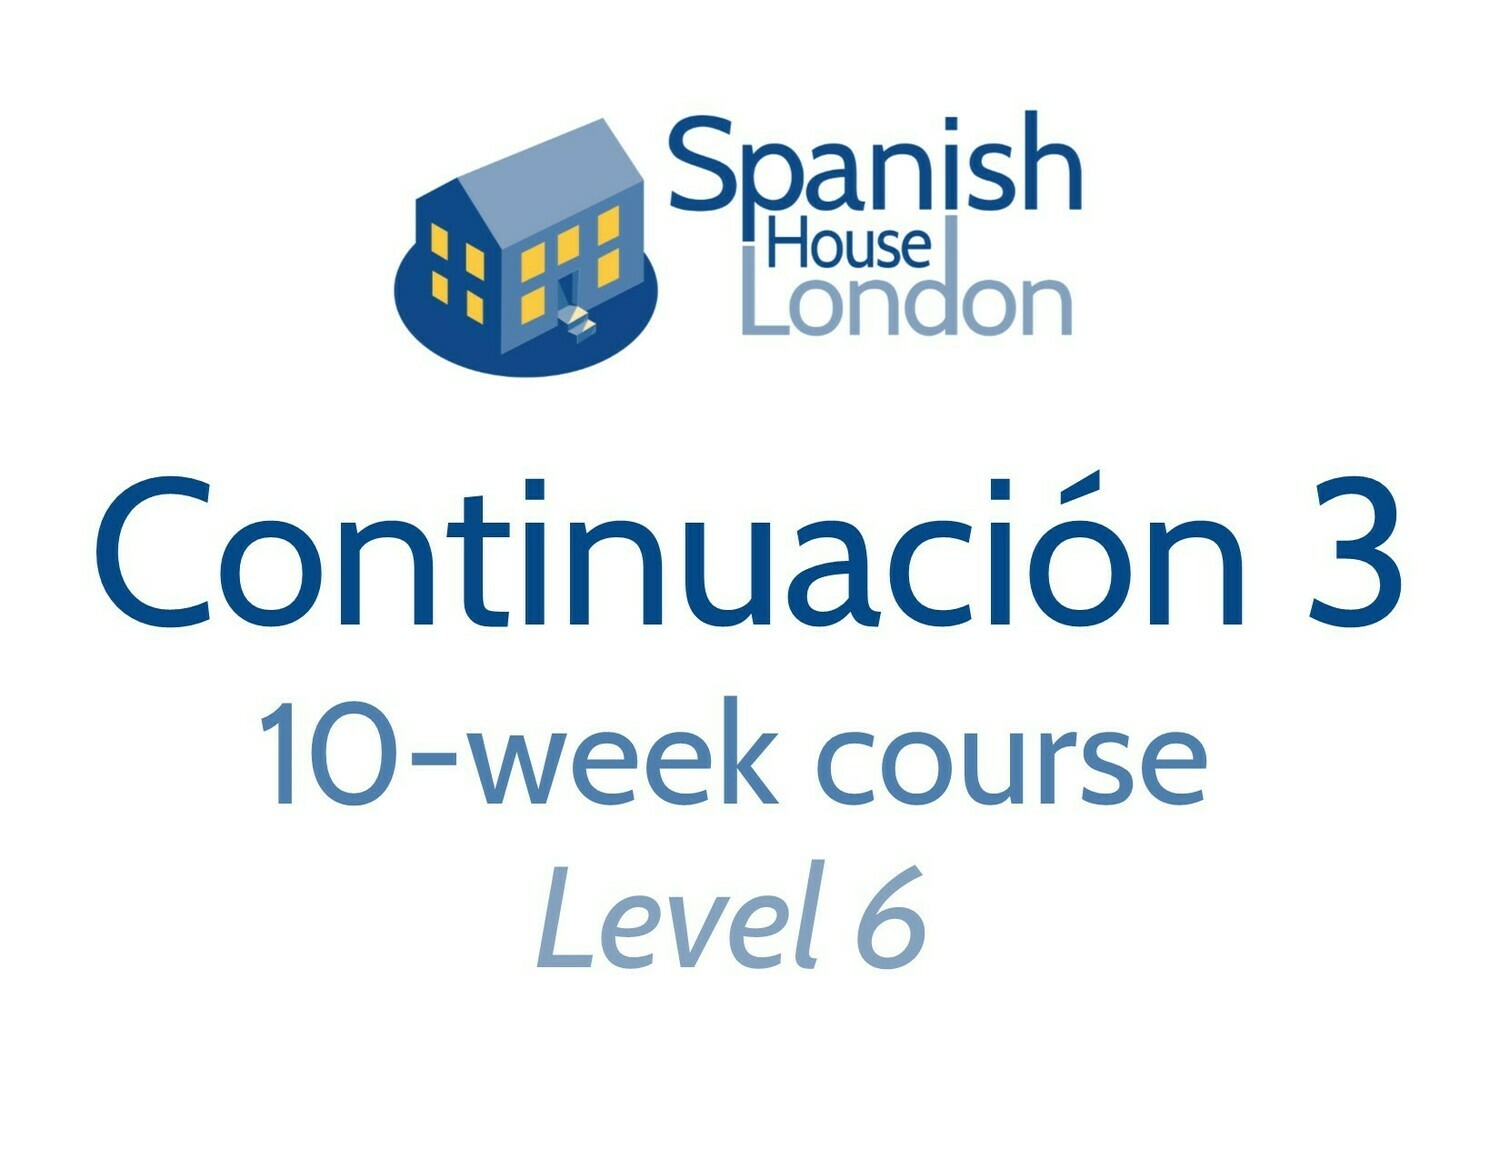 Continuacion 3 Course starting on 30th March at 7.30pm in Clapham North